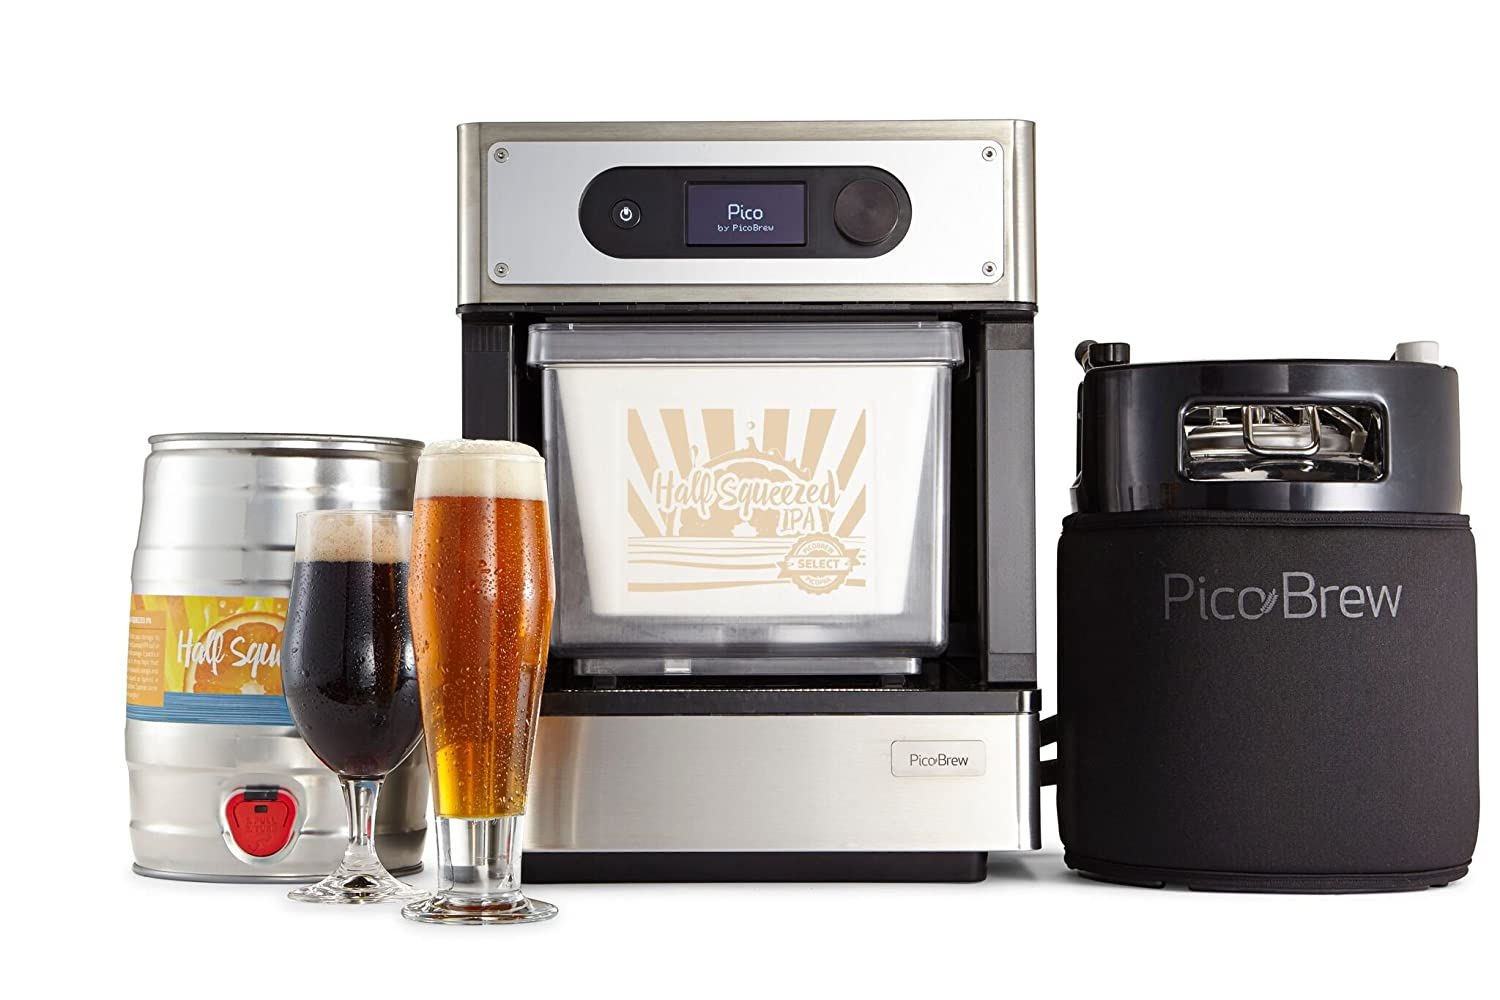 Amazon.com: PicoBrew Craft Beer Brewing Appliance (Discontinued by ...